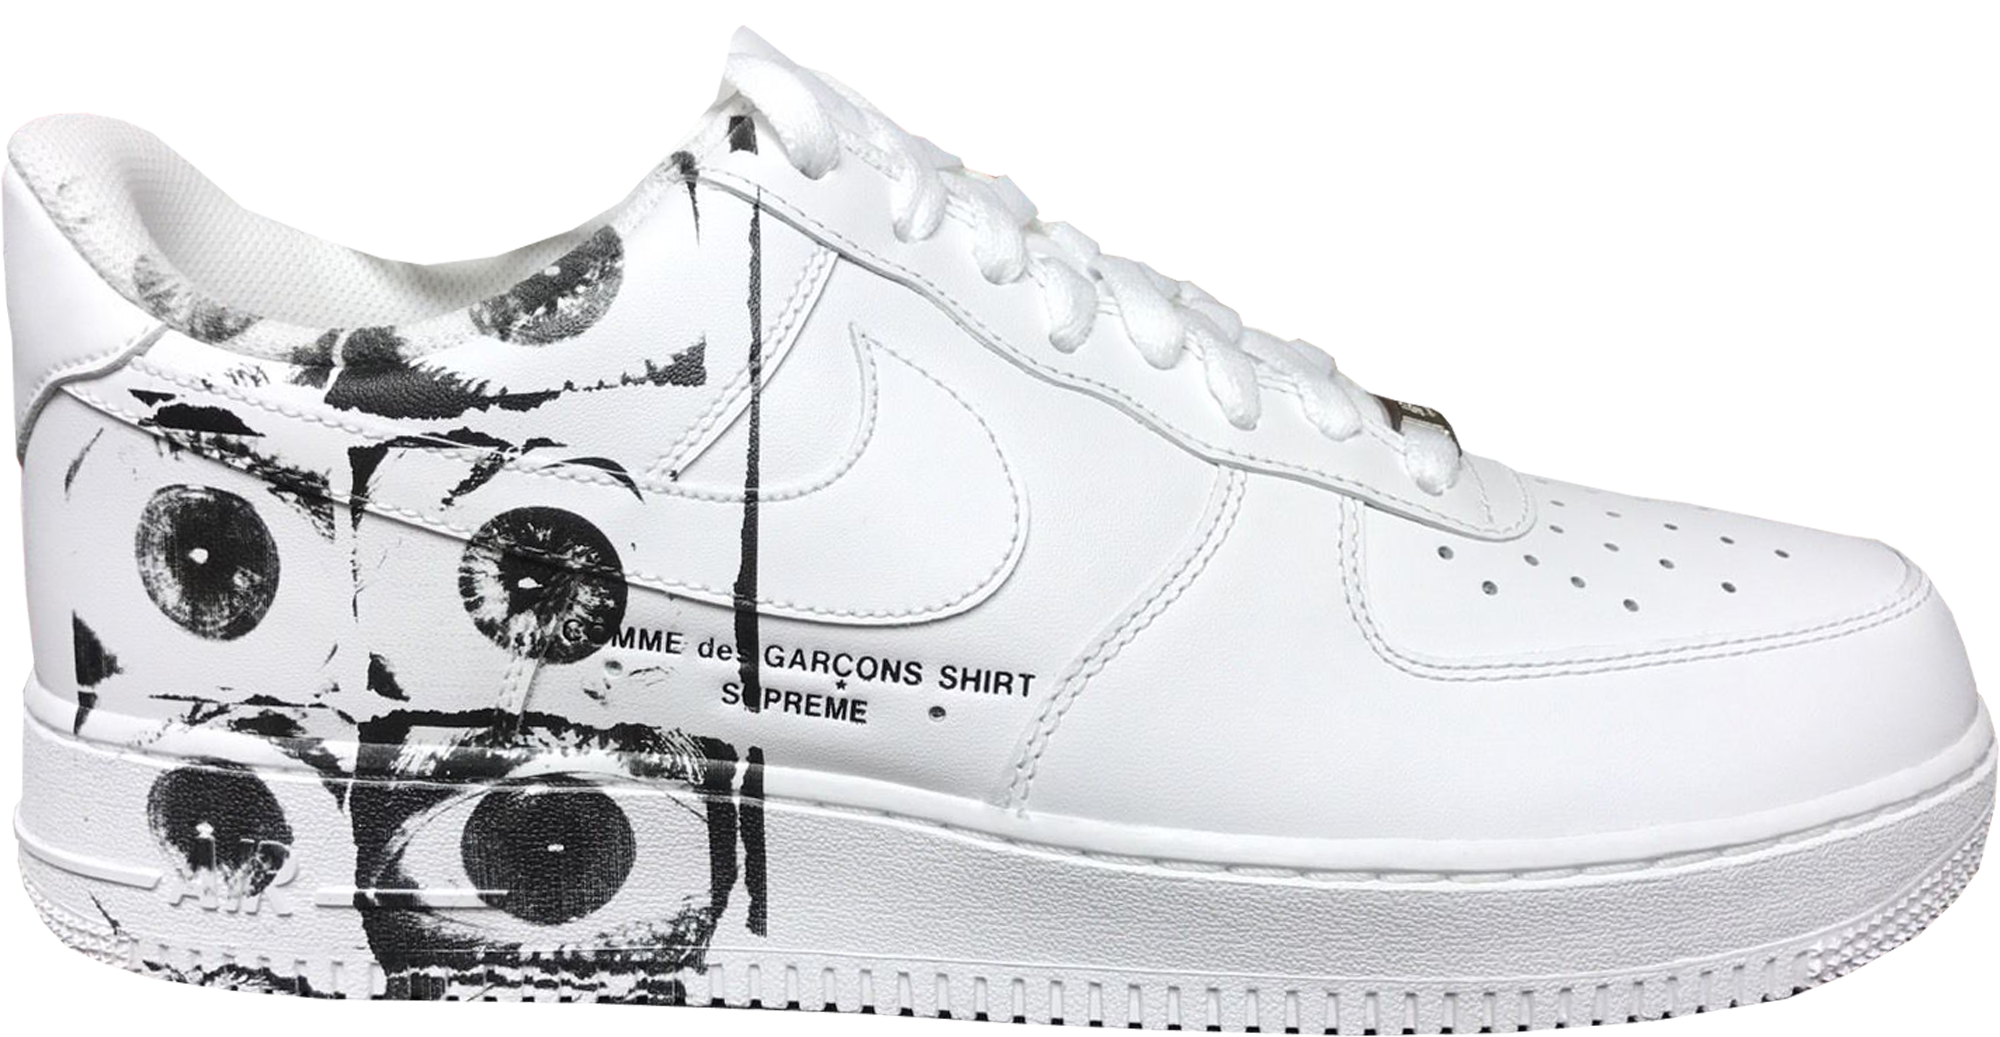 Supreme X Comme Des Garcons Shirt Nike Air Force 1 Low White